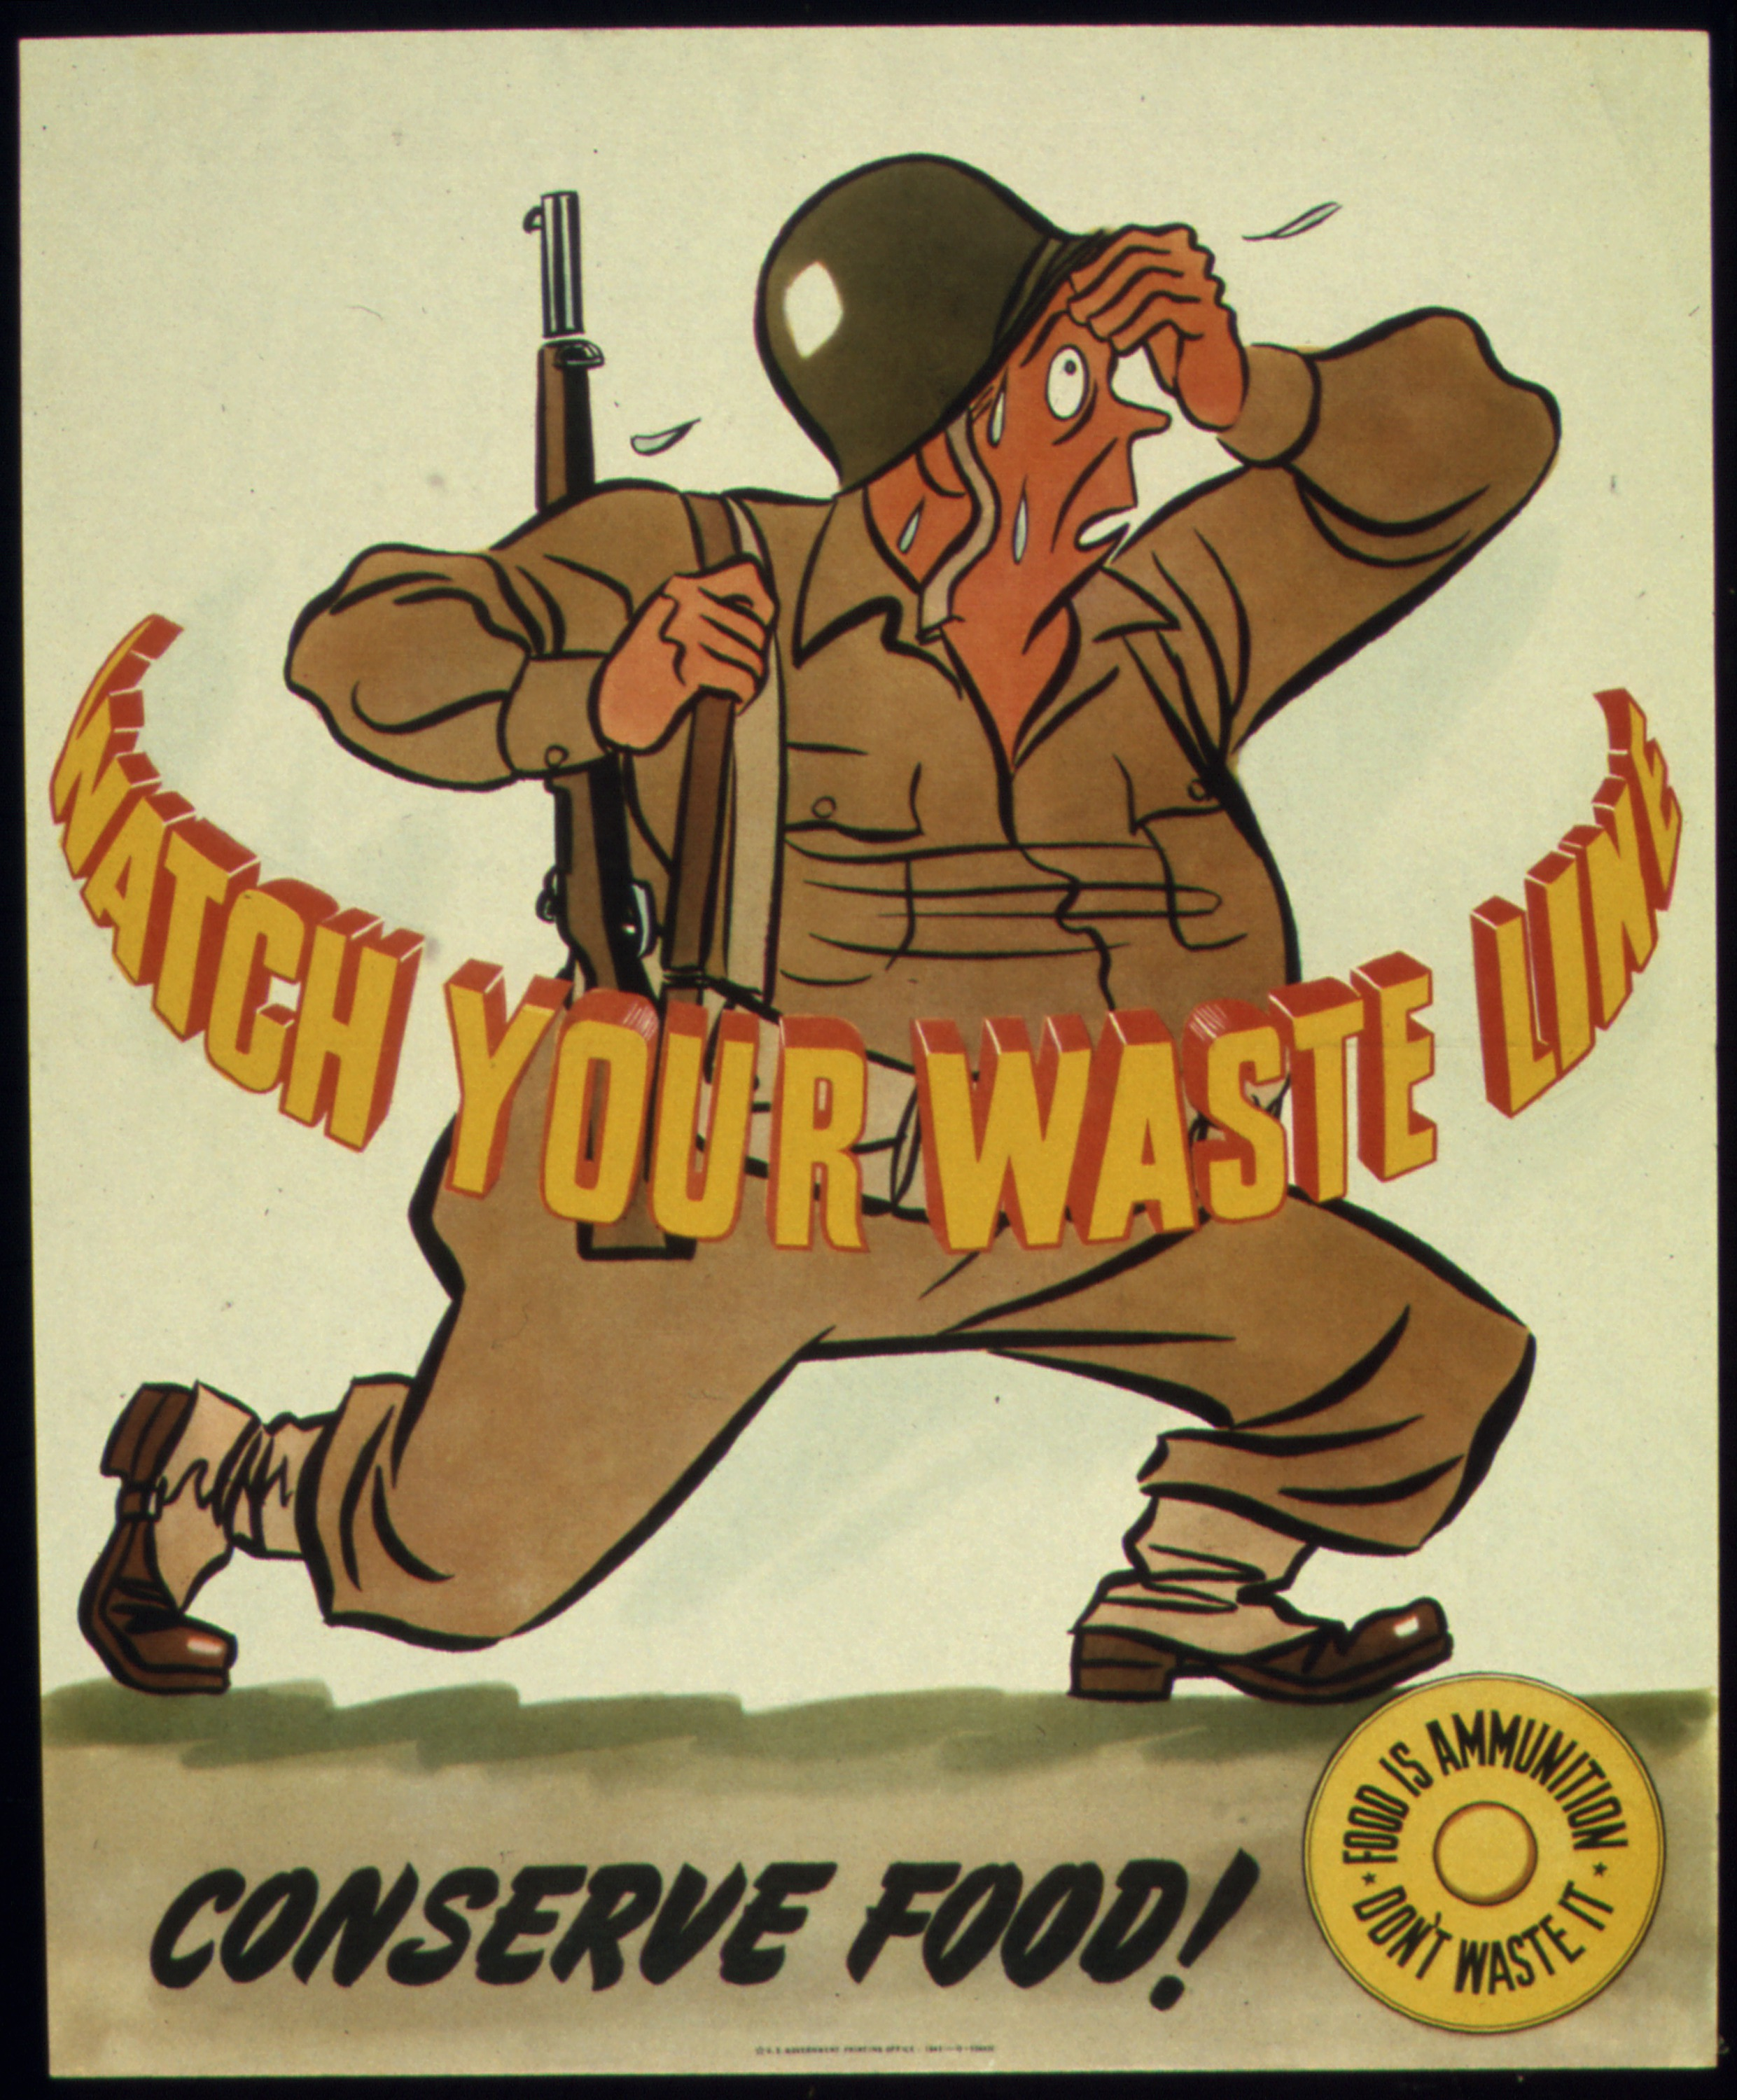 external image %22WATCH_YOUR_WASTE_LINE_-_CONSERVE_FOOD%22_%22FOOD_IS_AMMUNITION_-_U.S._ARMY%22_-_NARA_-_516057.jpg